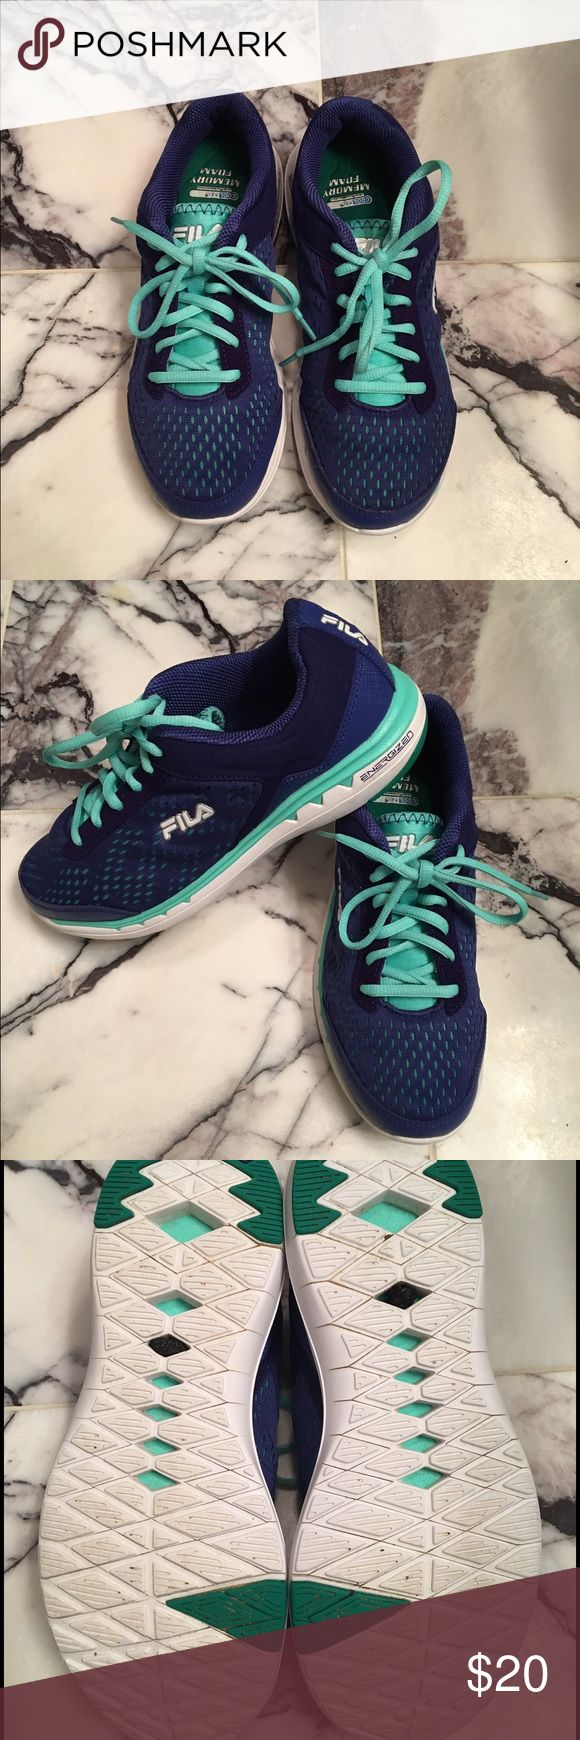 Women's FILA  Energized Sneakers! 👟🏃♀️ Women's FILA Energized Sneakers Shoe With Memory Foam Sole! Like New! Awesome Condition! Royal Blue/Teal! Size 8.5 👟🏃♀️ Fila Shoes Sneakers